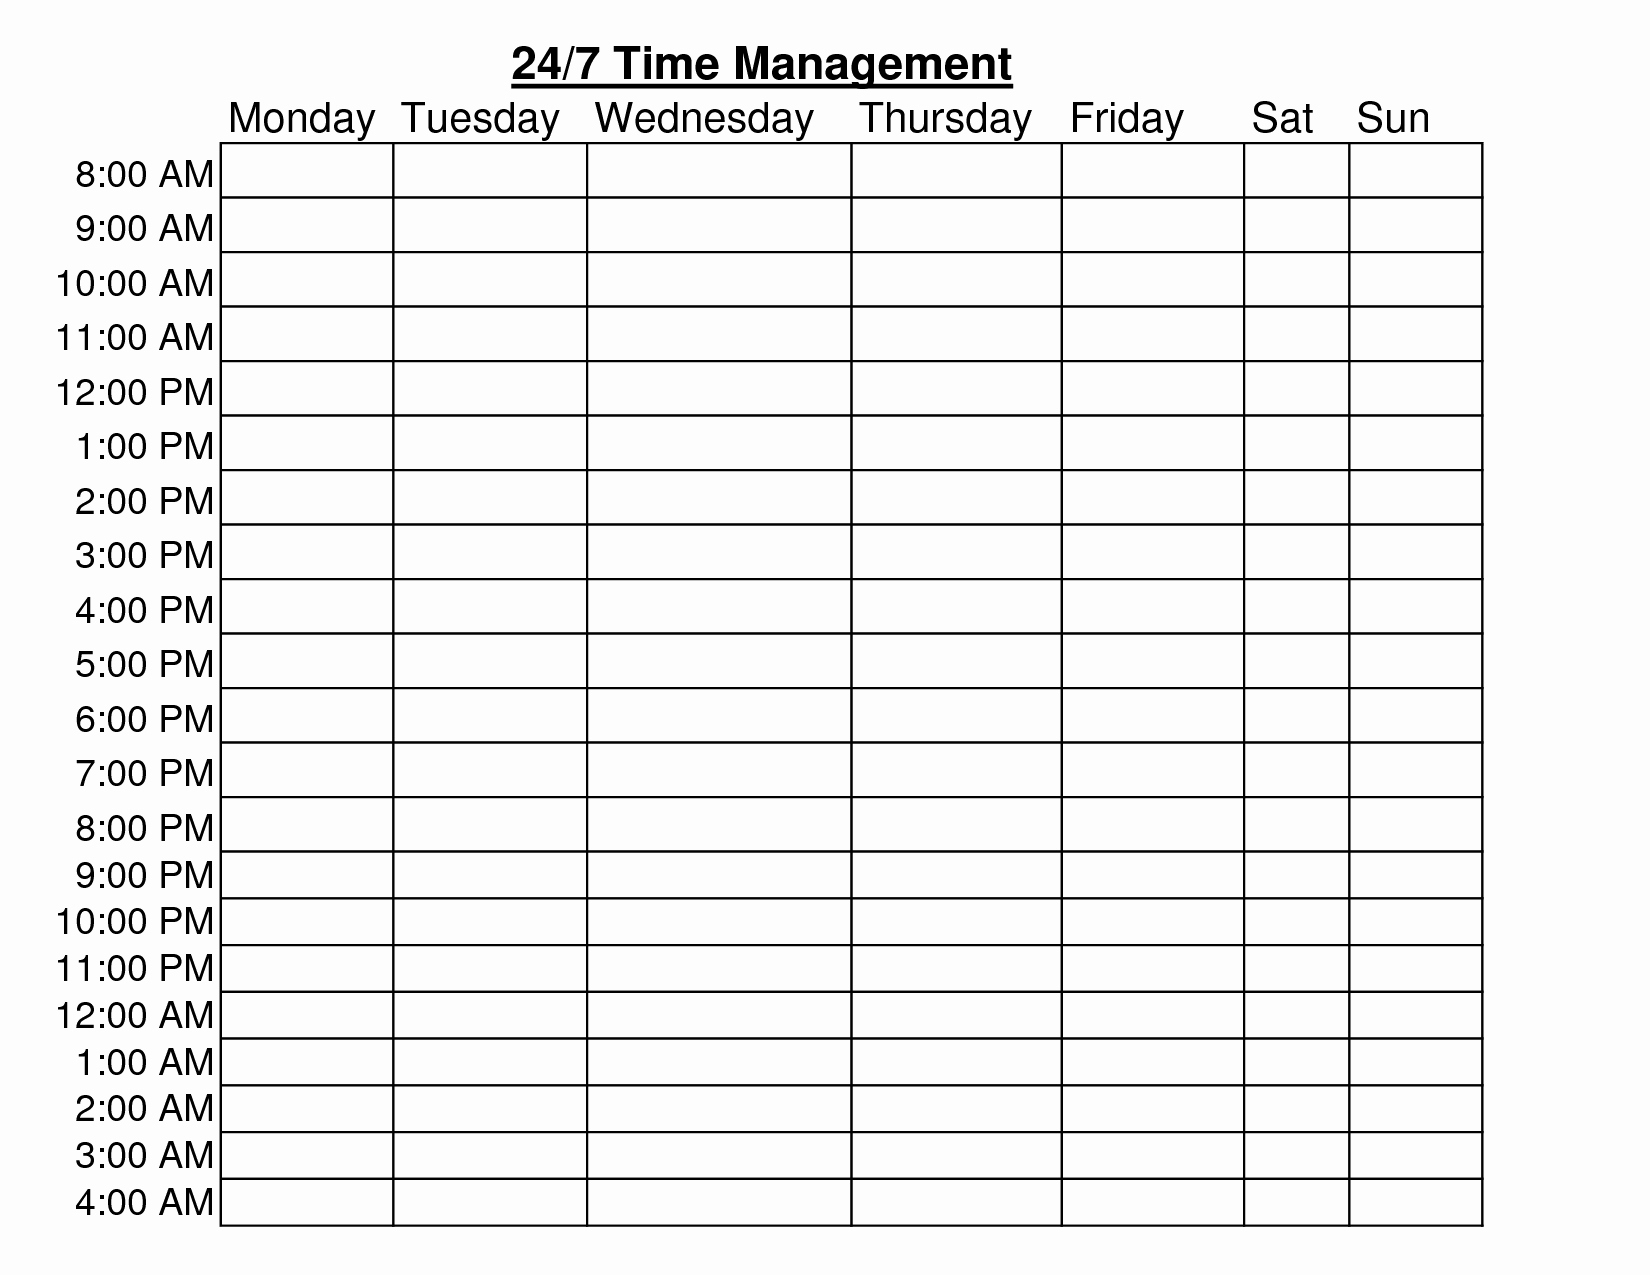 Time Management Sheet Pdf Legal 20 Elegant Rotating Schedule Intended For Time Management Sheet Template